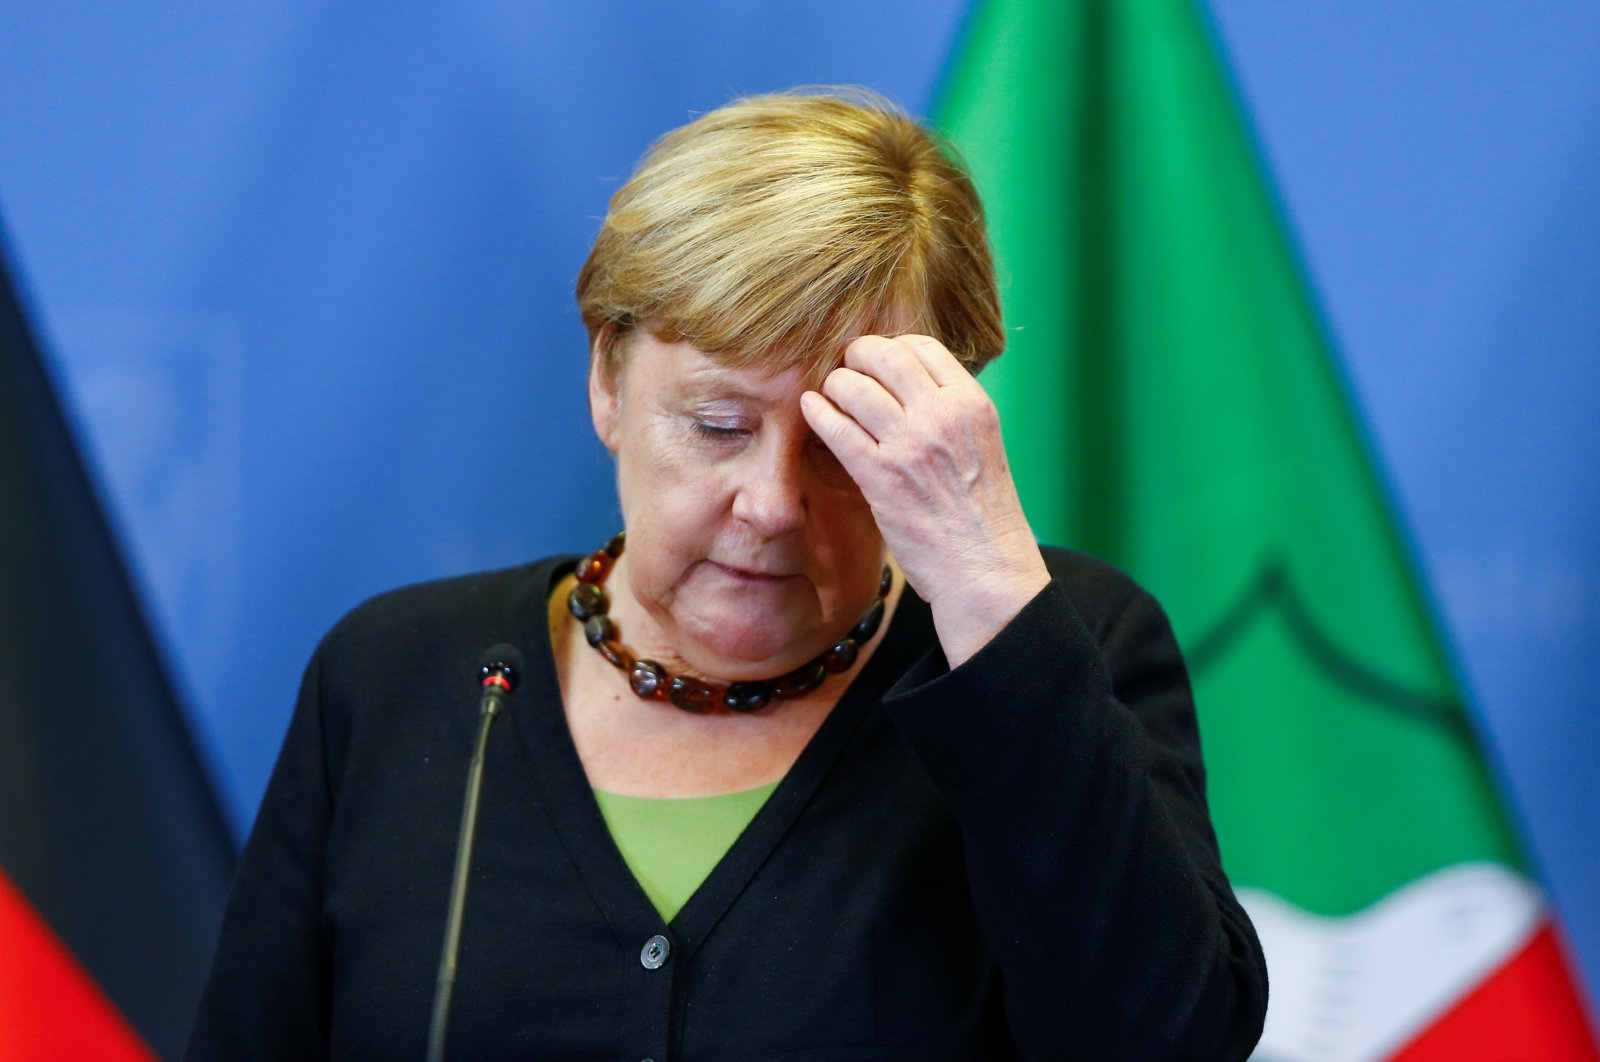 German Chancellor Angela Merkel attends a news conference with North Rhine-Westphalia's State Premier, Christian Democratic Union (CDU) party leader and candidate for chancellor Armin Laschet, in Hagen, Germany, Sept. 5, 2021. (Reuters Photo)